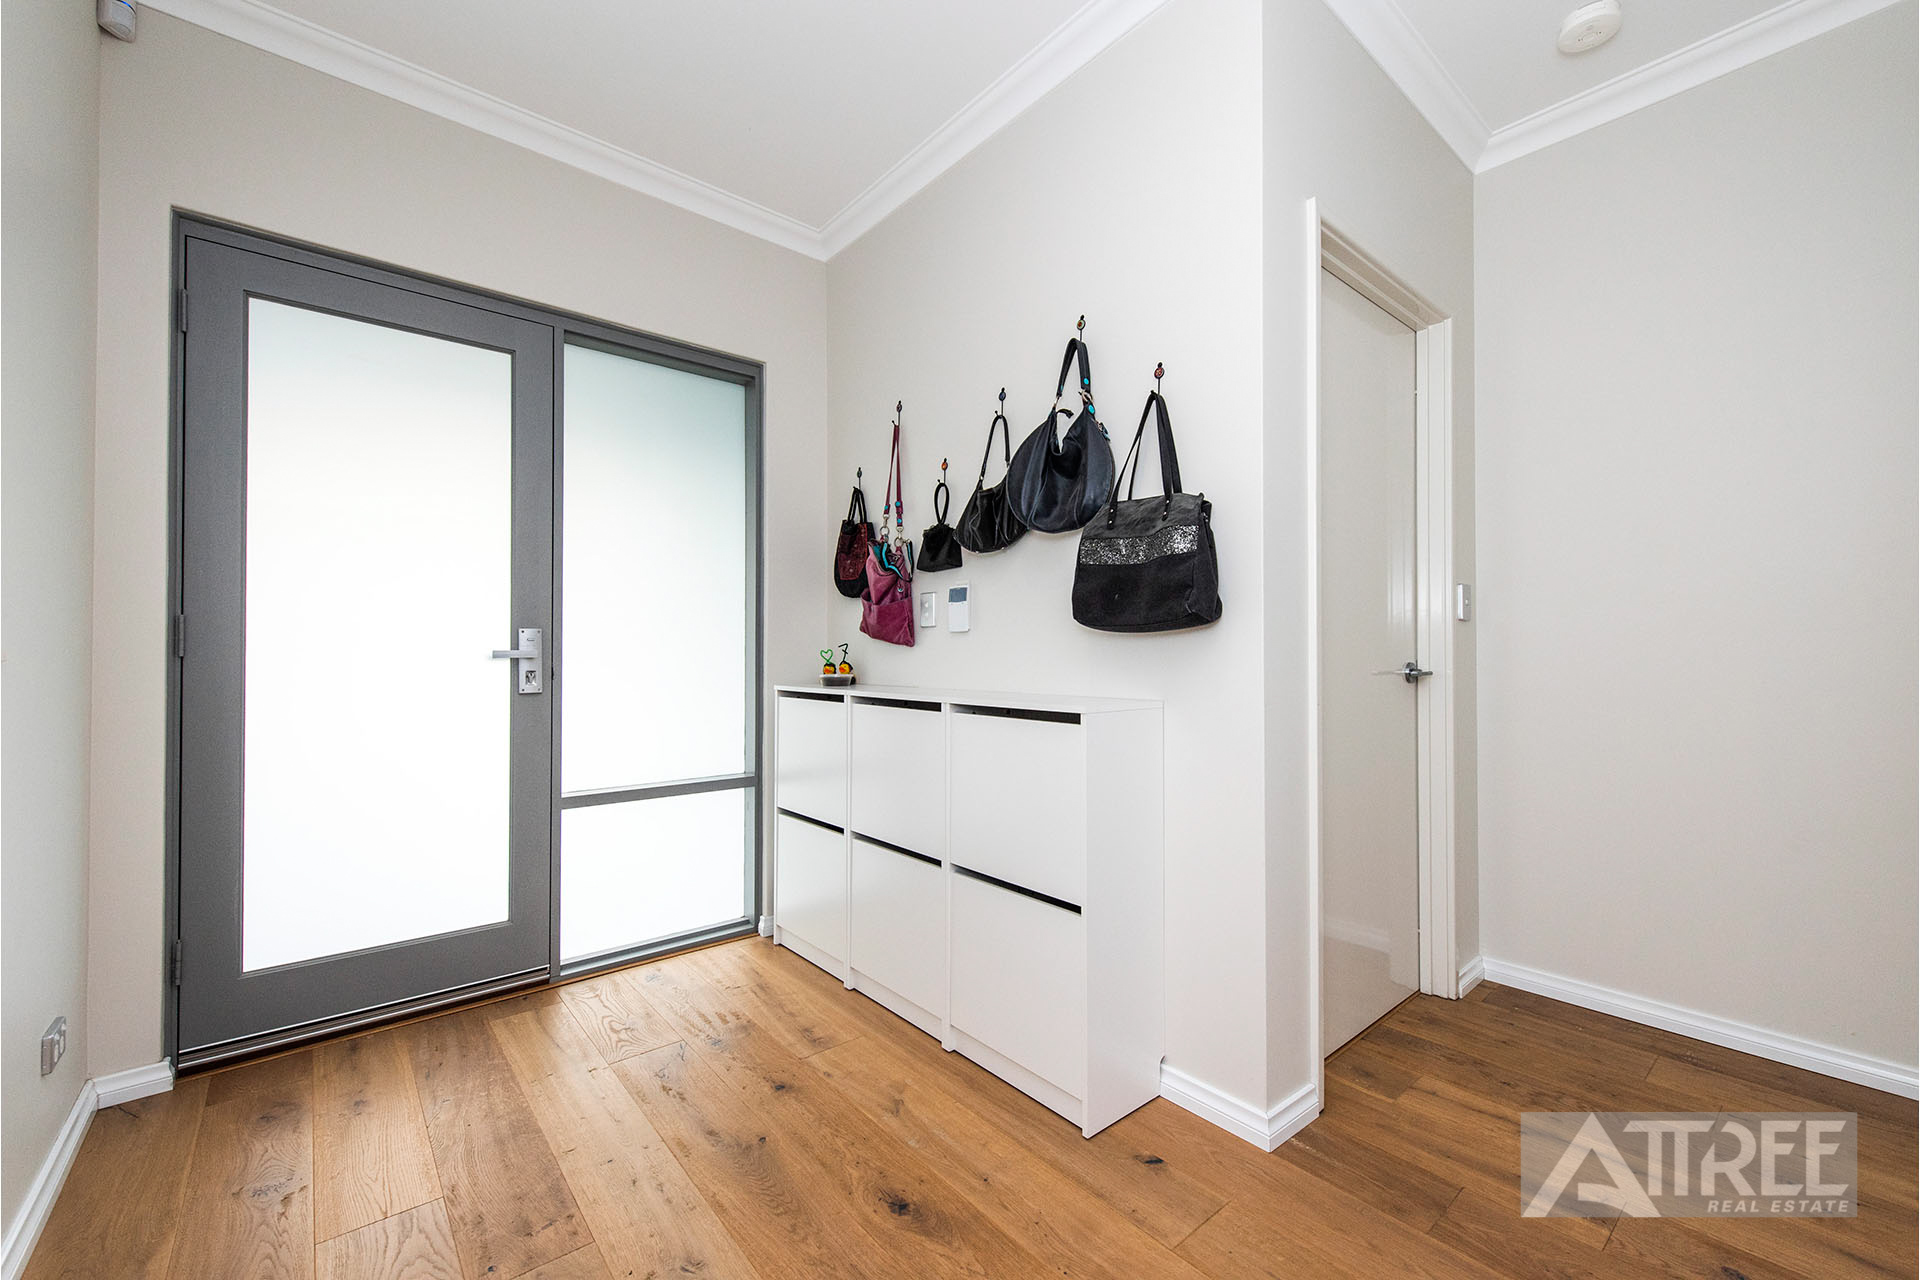 Property for sale in SOUTHERN RIVER, 36 Orpington Drive : Attree Real Estate